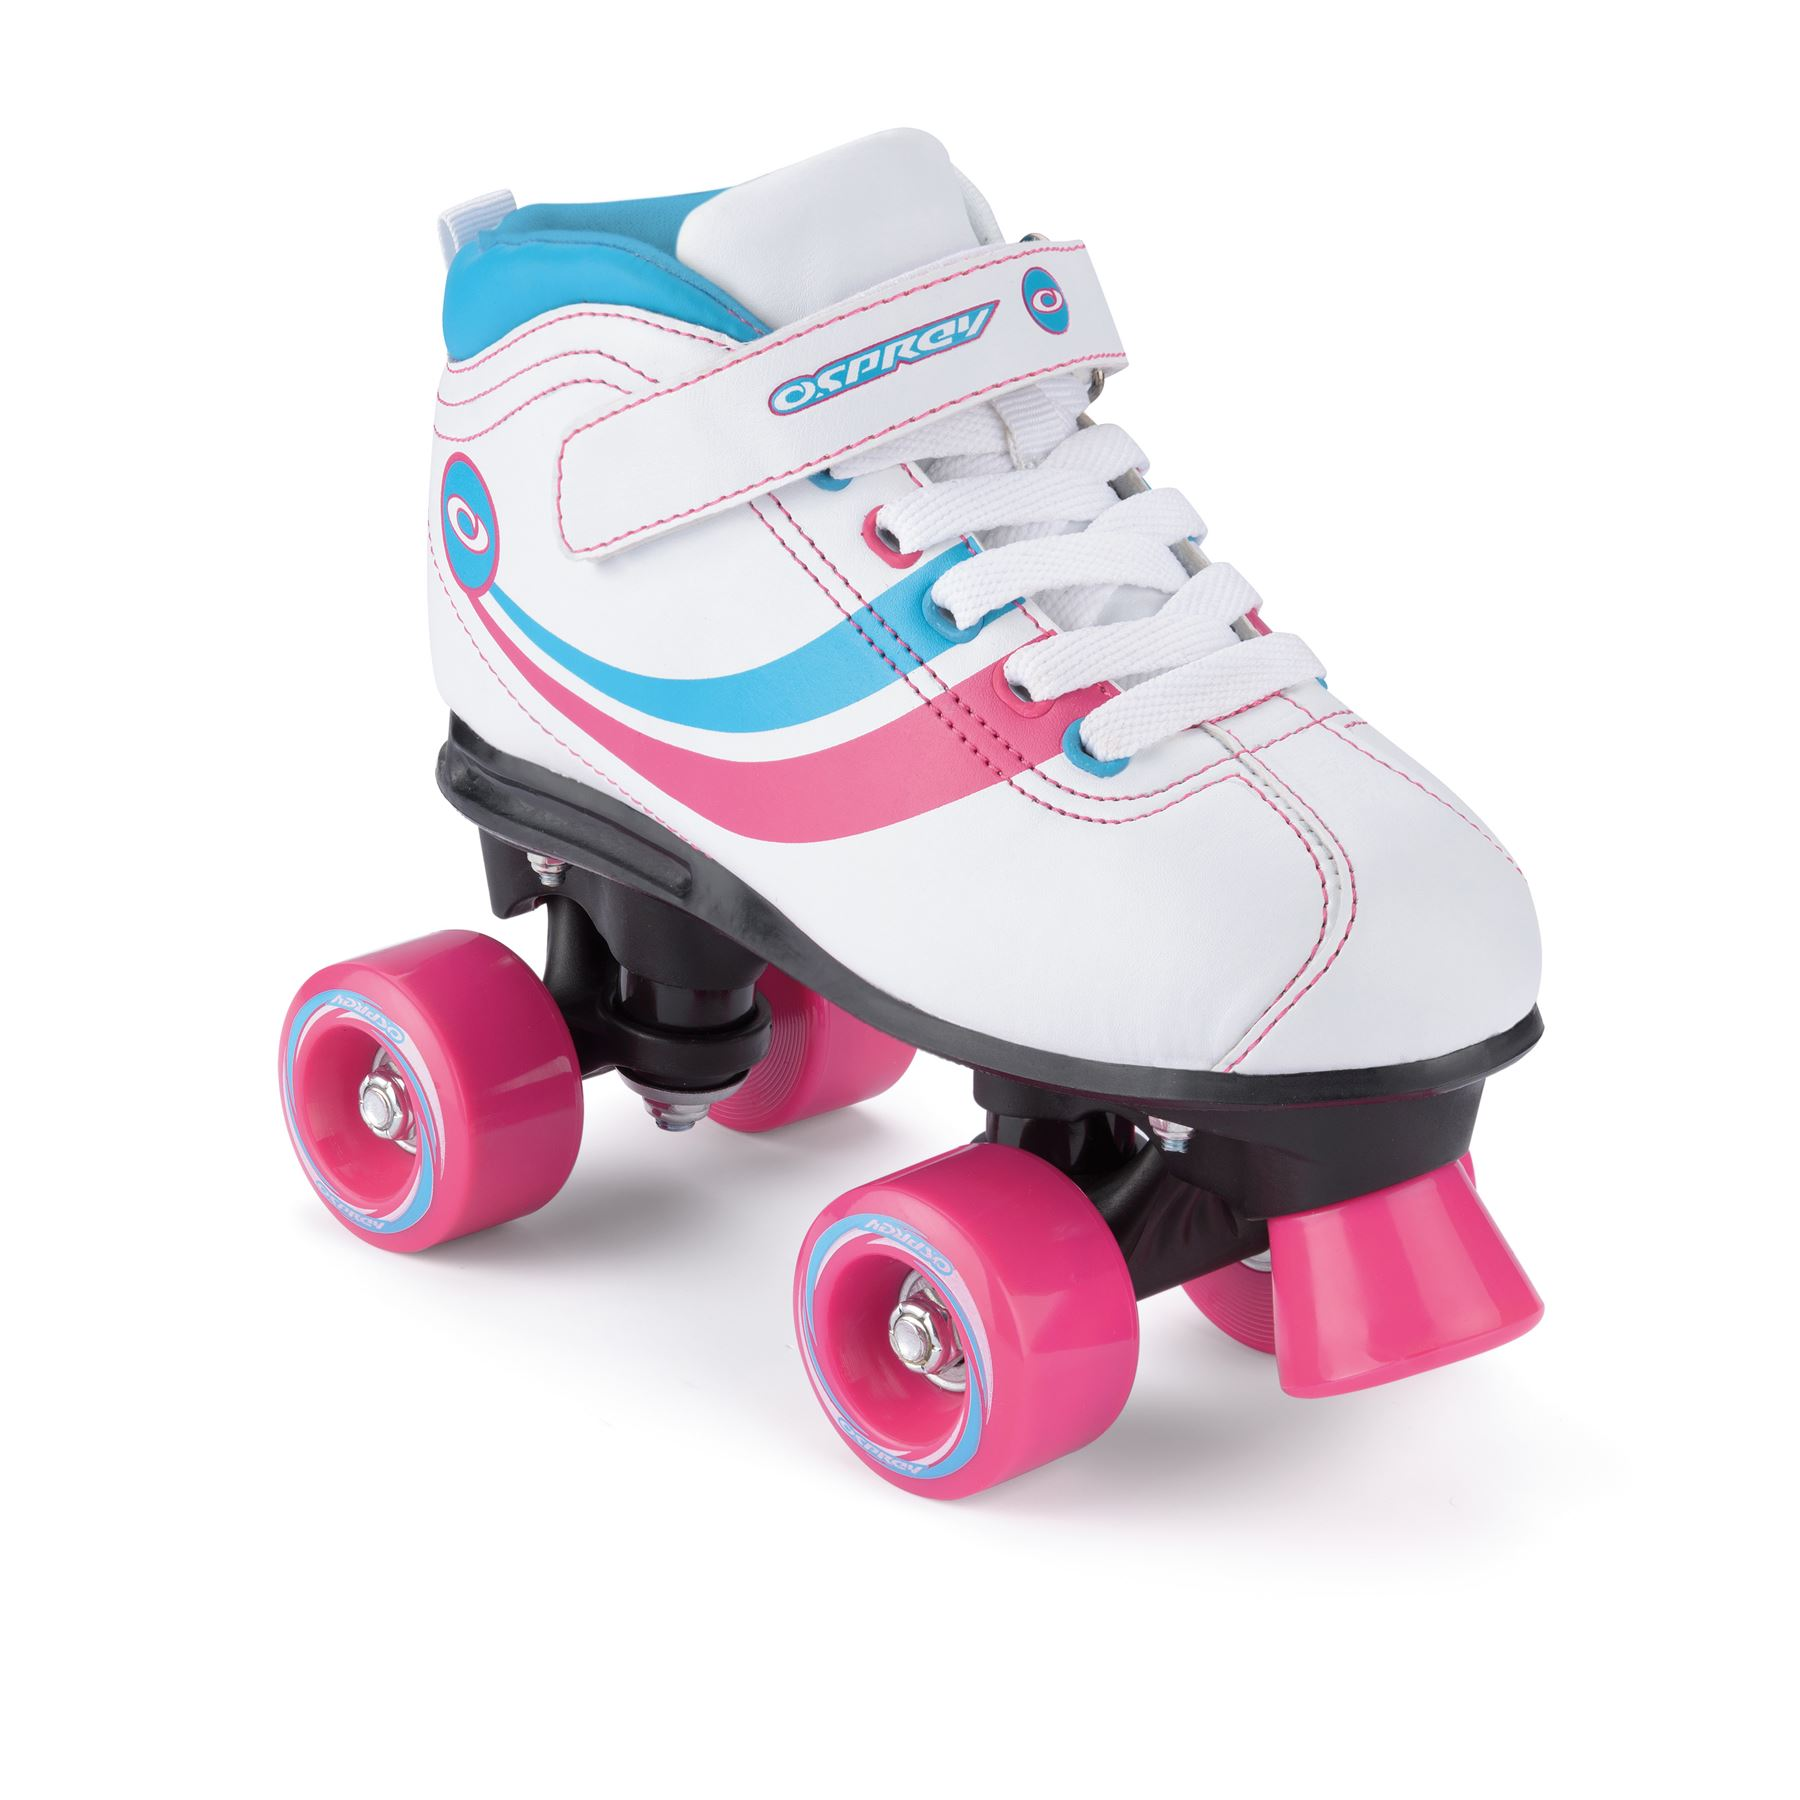 Osprey Childrens Adults Disco Quad Roller Skates With